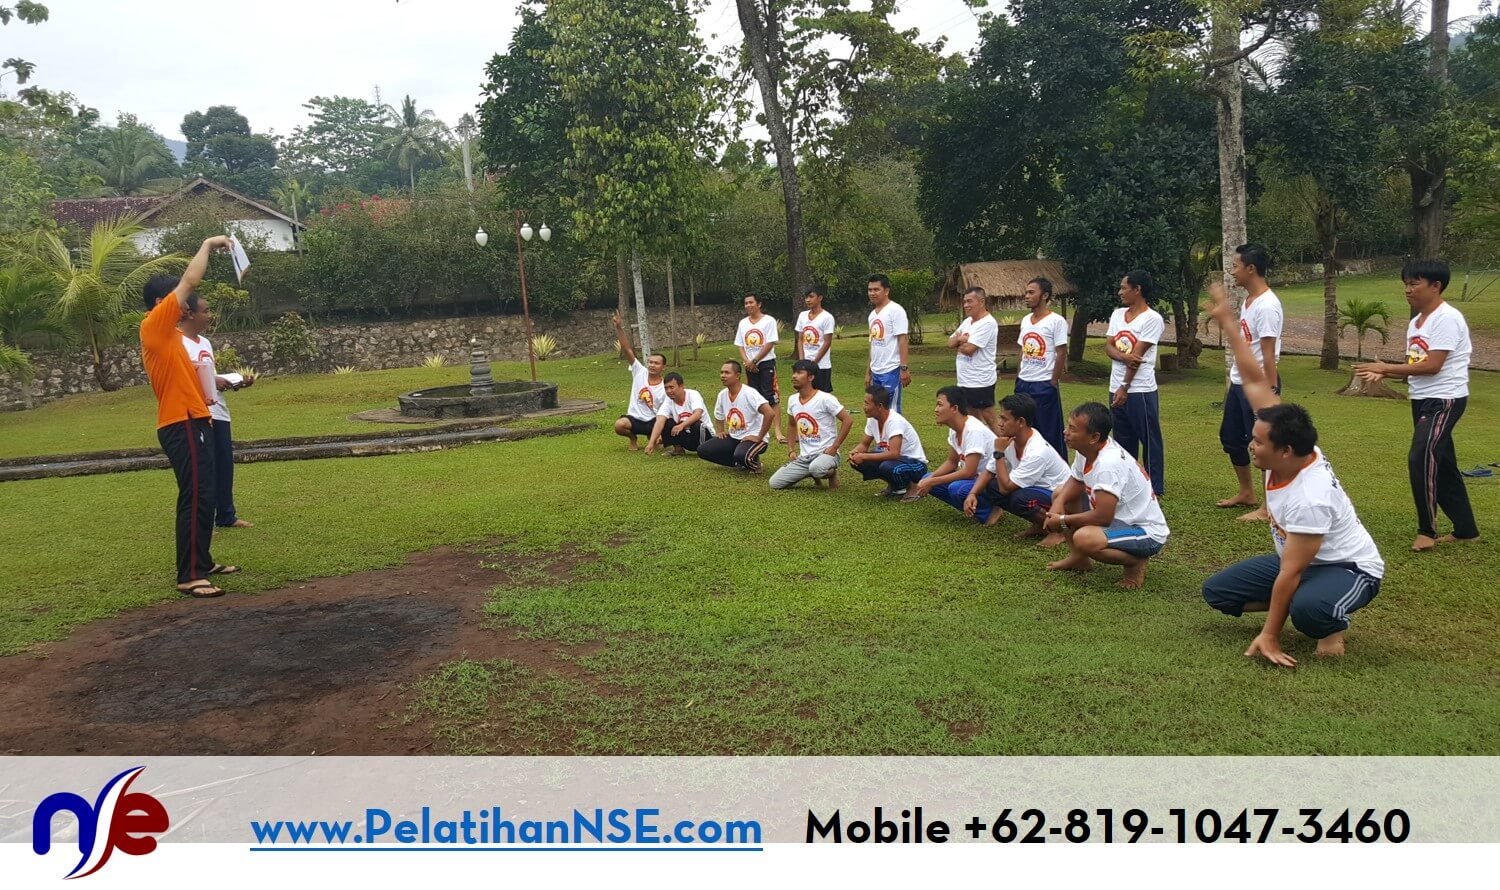 NSE Basic Self Empowerment KAI 29-30 September 2016 - Games